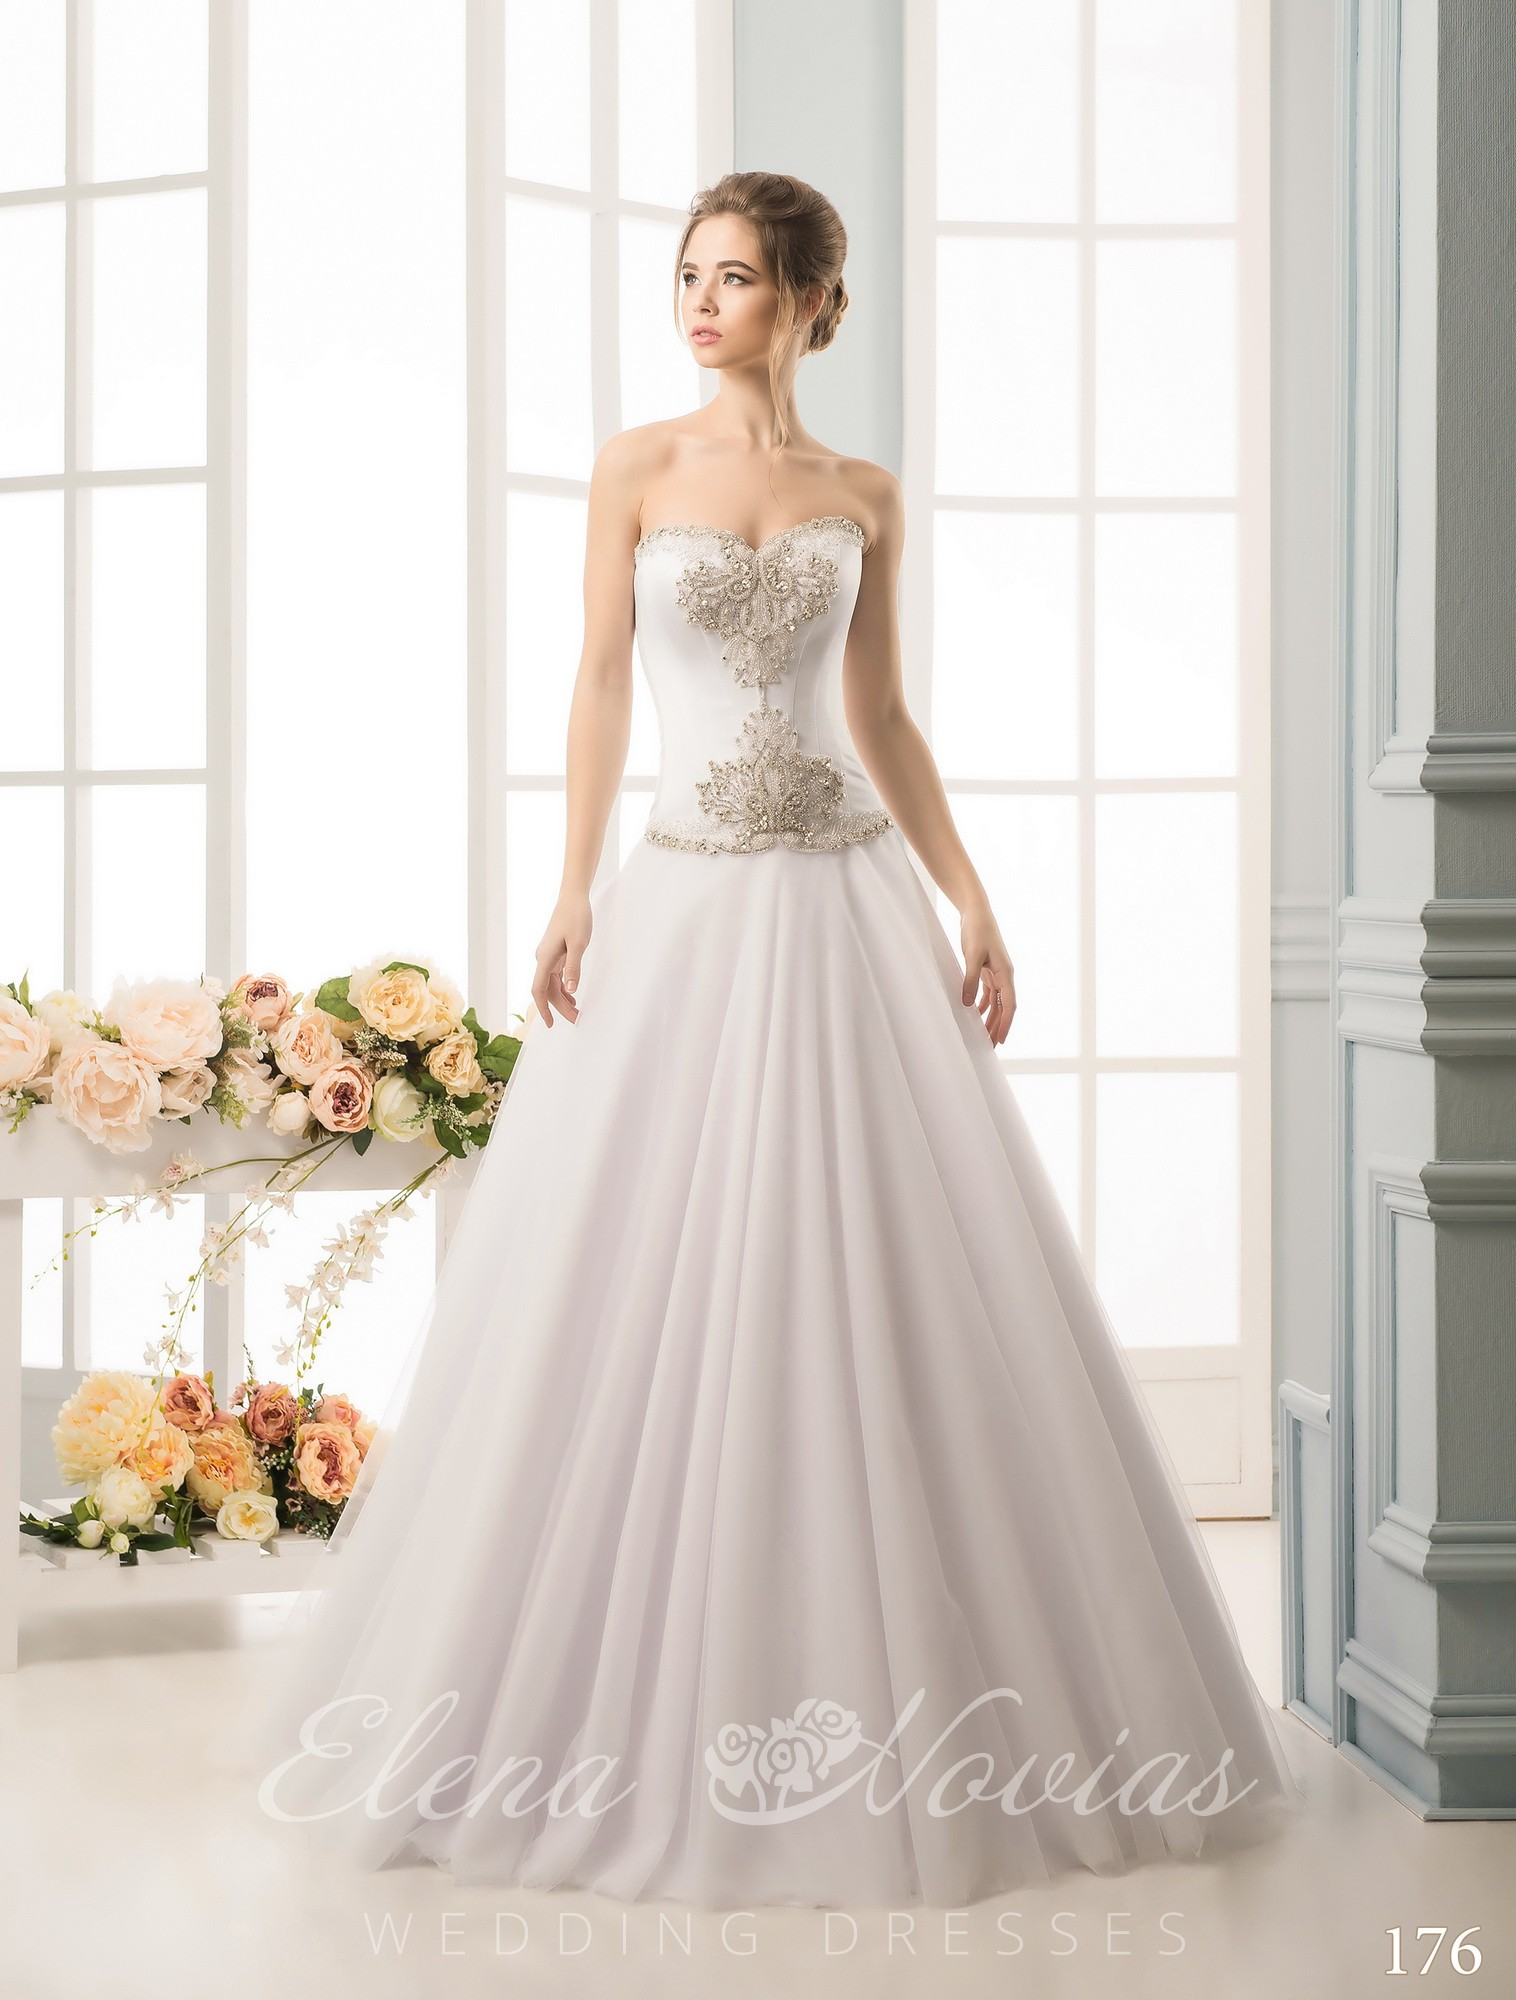 Wedding dress wholesale 176